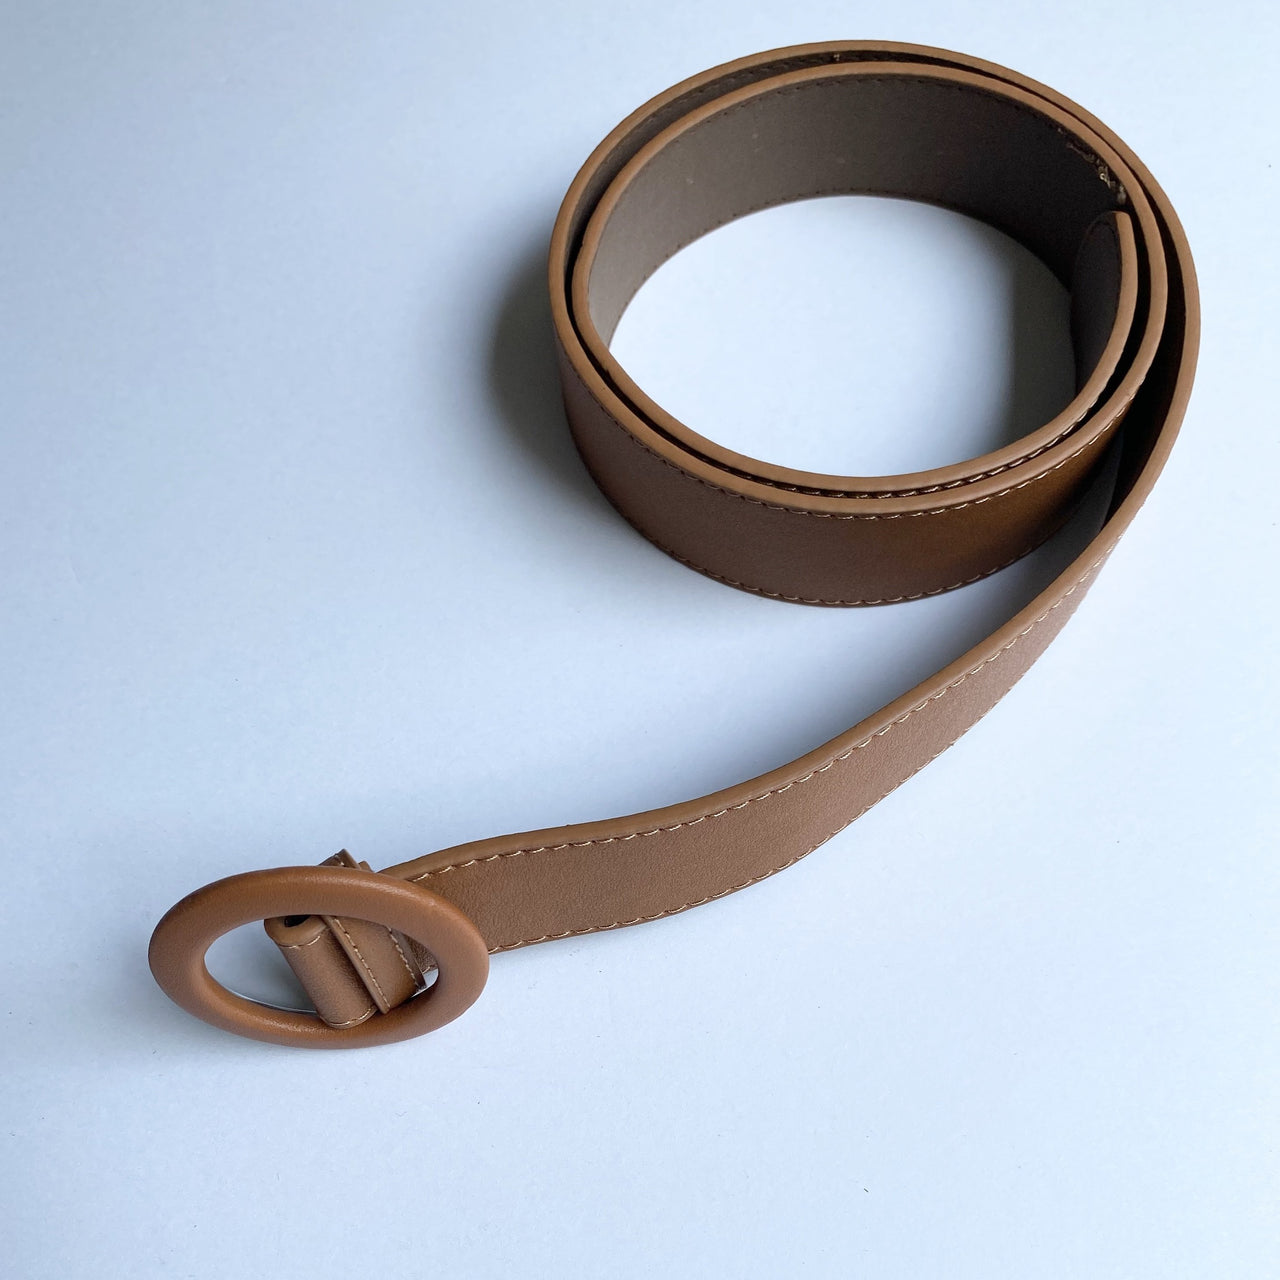 TIA Tan Circle Ring Belt